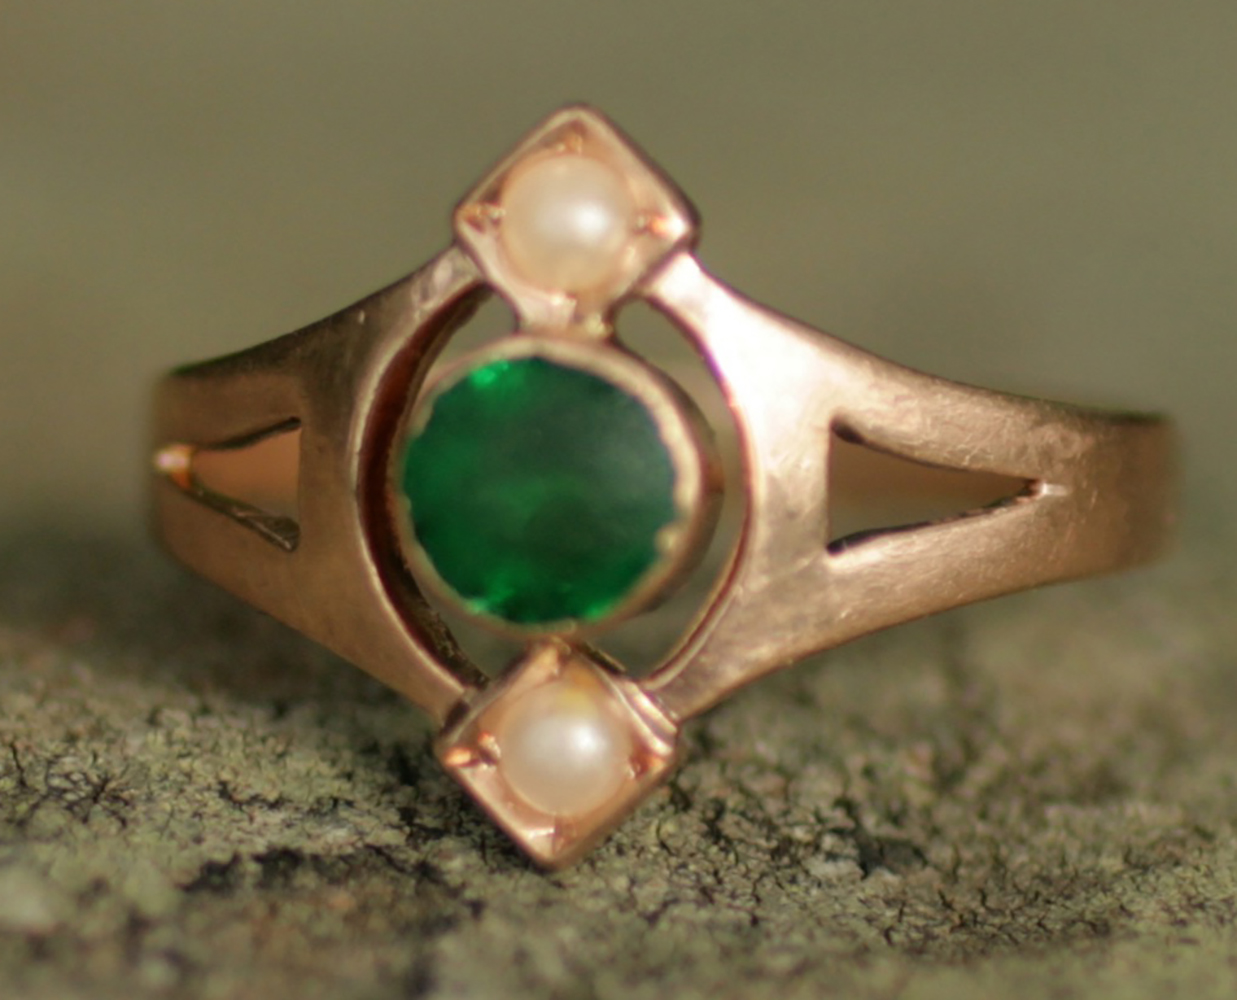 Antique emerald and pearl ring. Elder and Bloom.